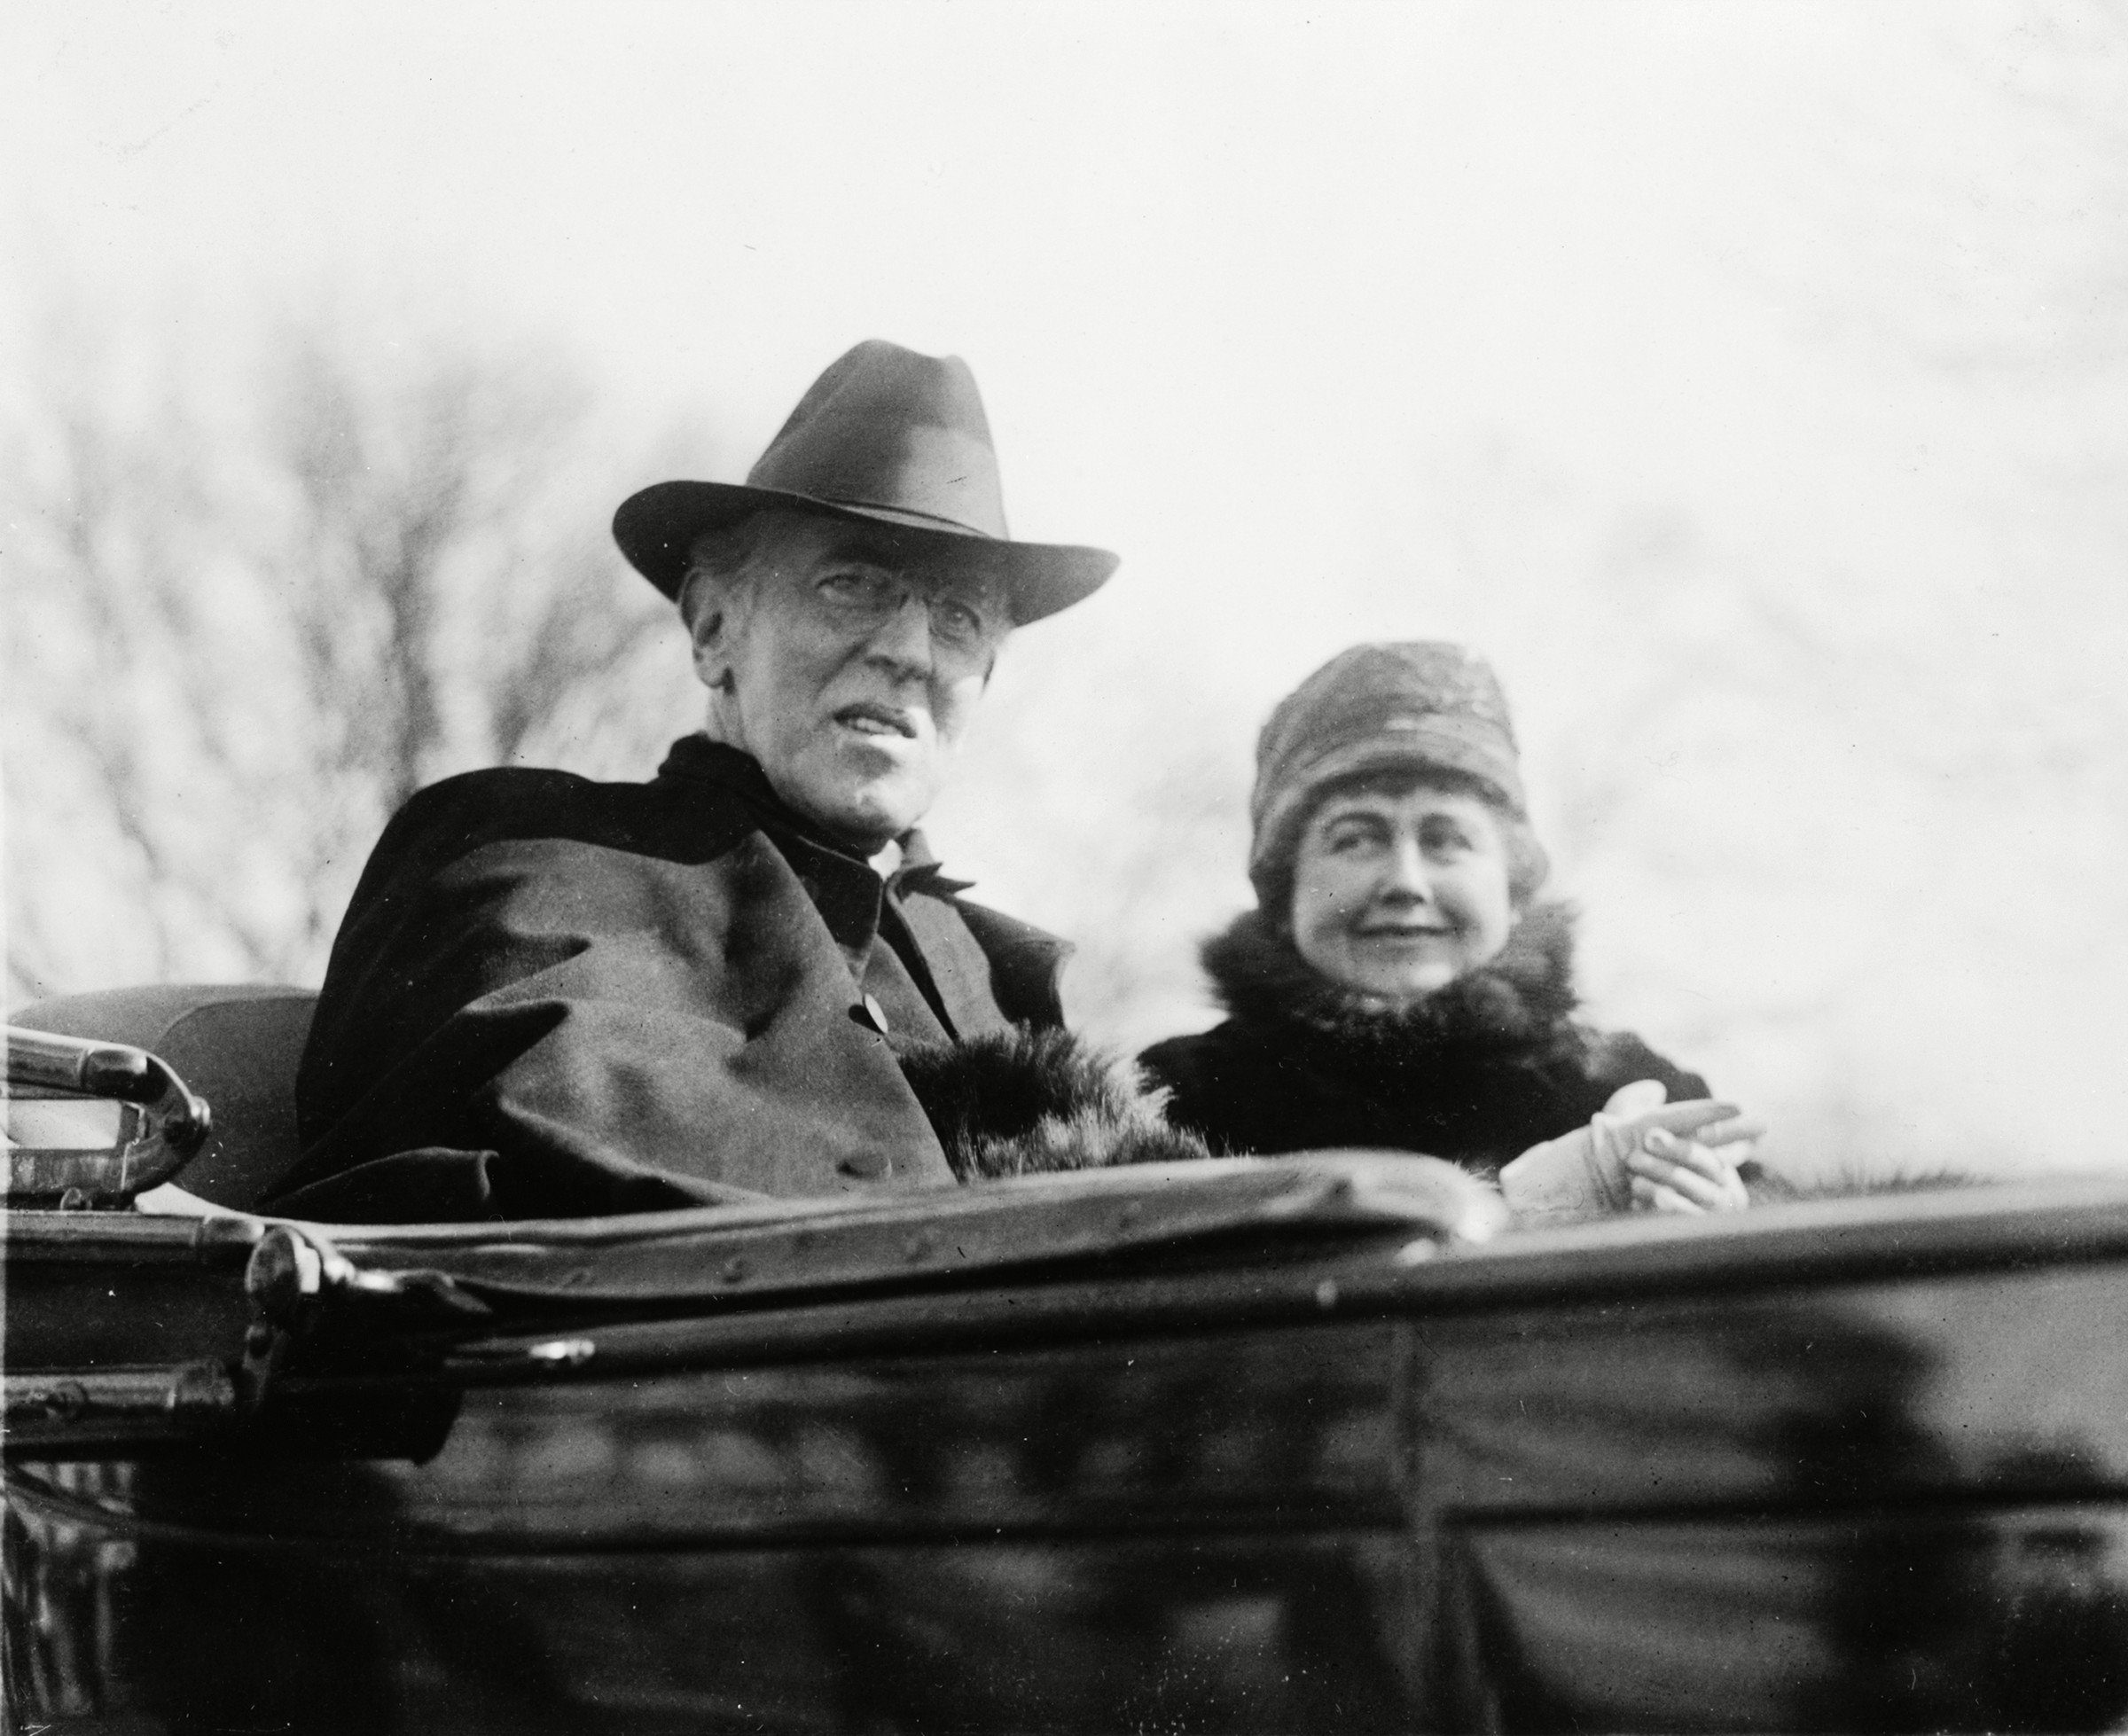 Mandatory Credit: Photo by Everett/Shutterstock (10274815a) Ex-President Woodrow Wilson (1856-1924) and his second wife, Edith Bolling Galt Wilson riding in an open carriage in Washington, DC in 1923. President Wilson shows the effects of a severe stroke he suffered in October 1919. Historical Collection